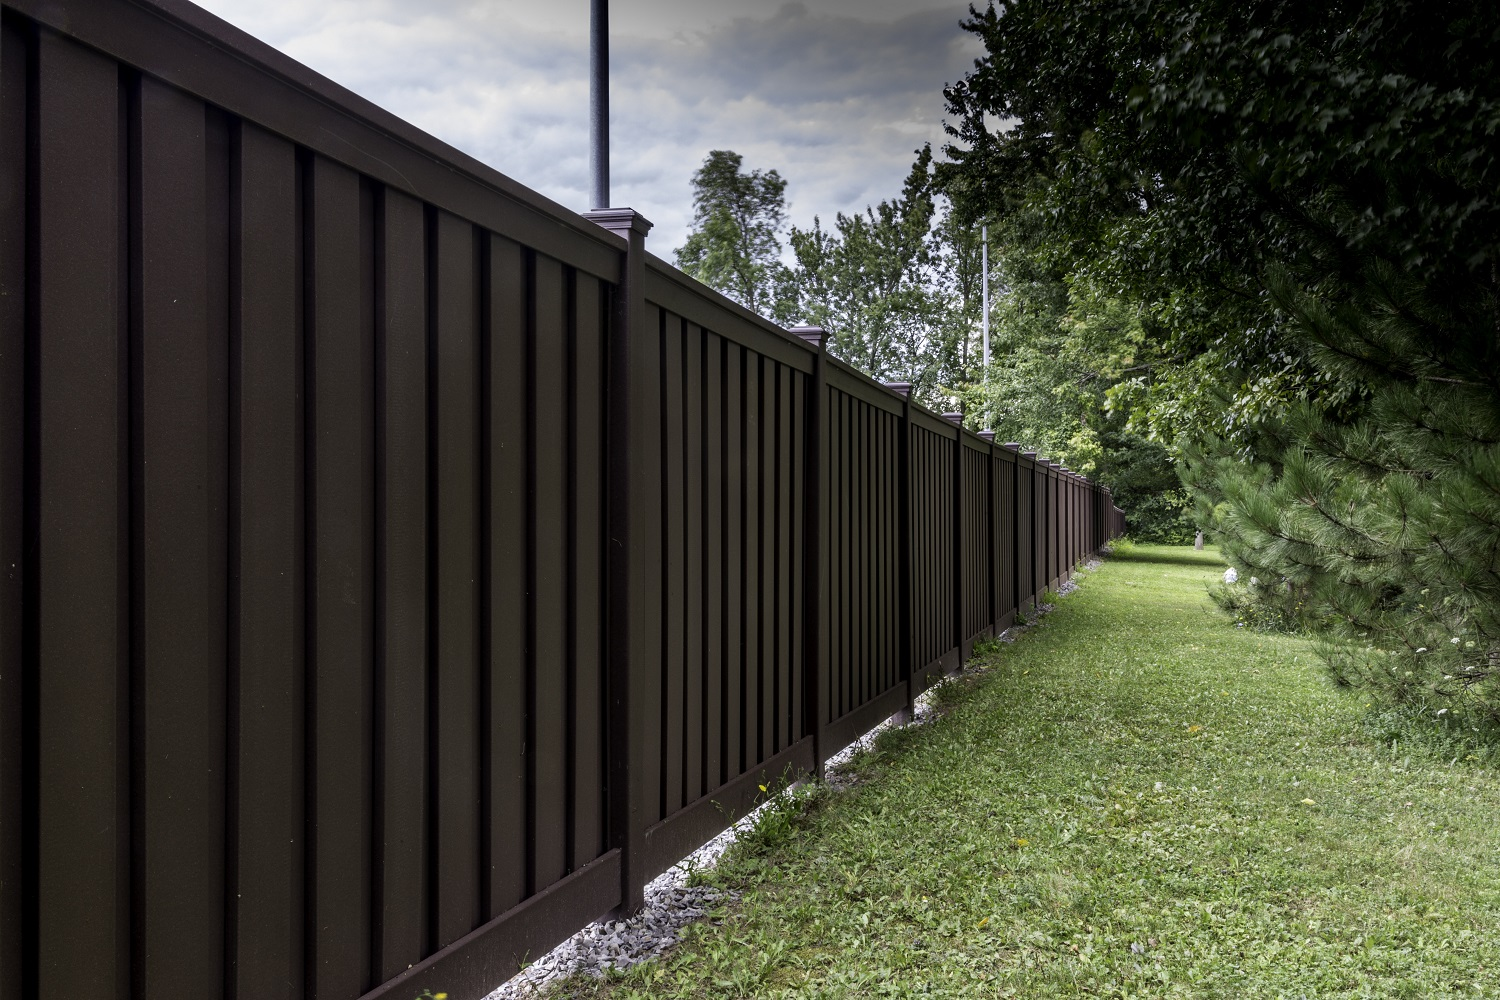 Trex Fencing Installation in East Syracuse New York